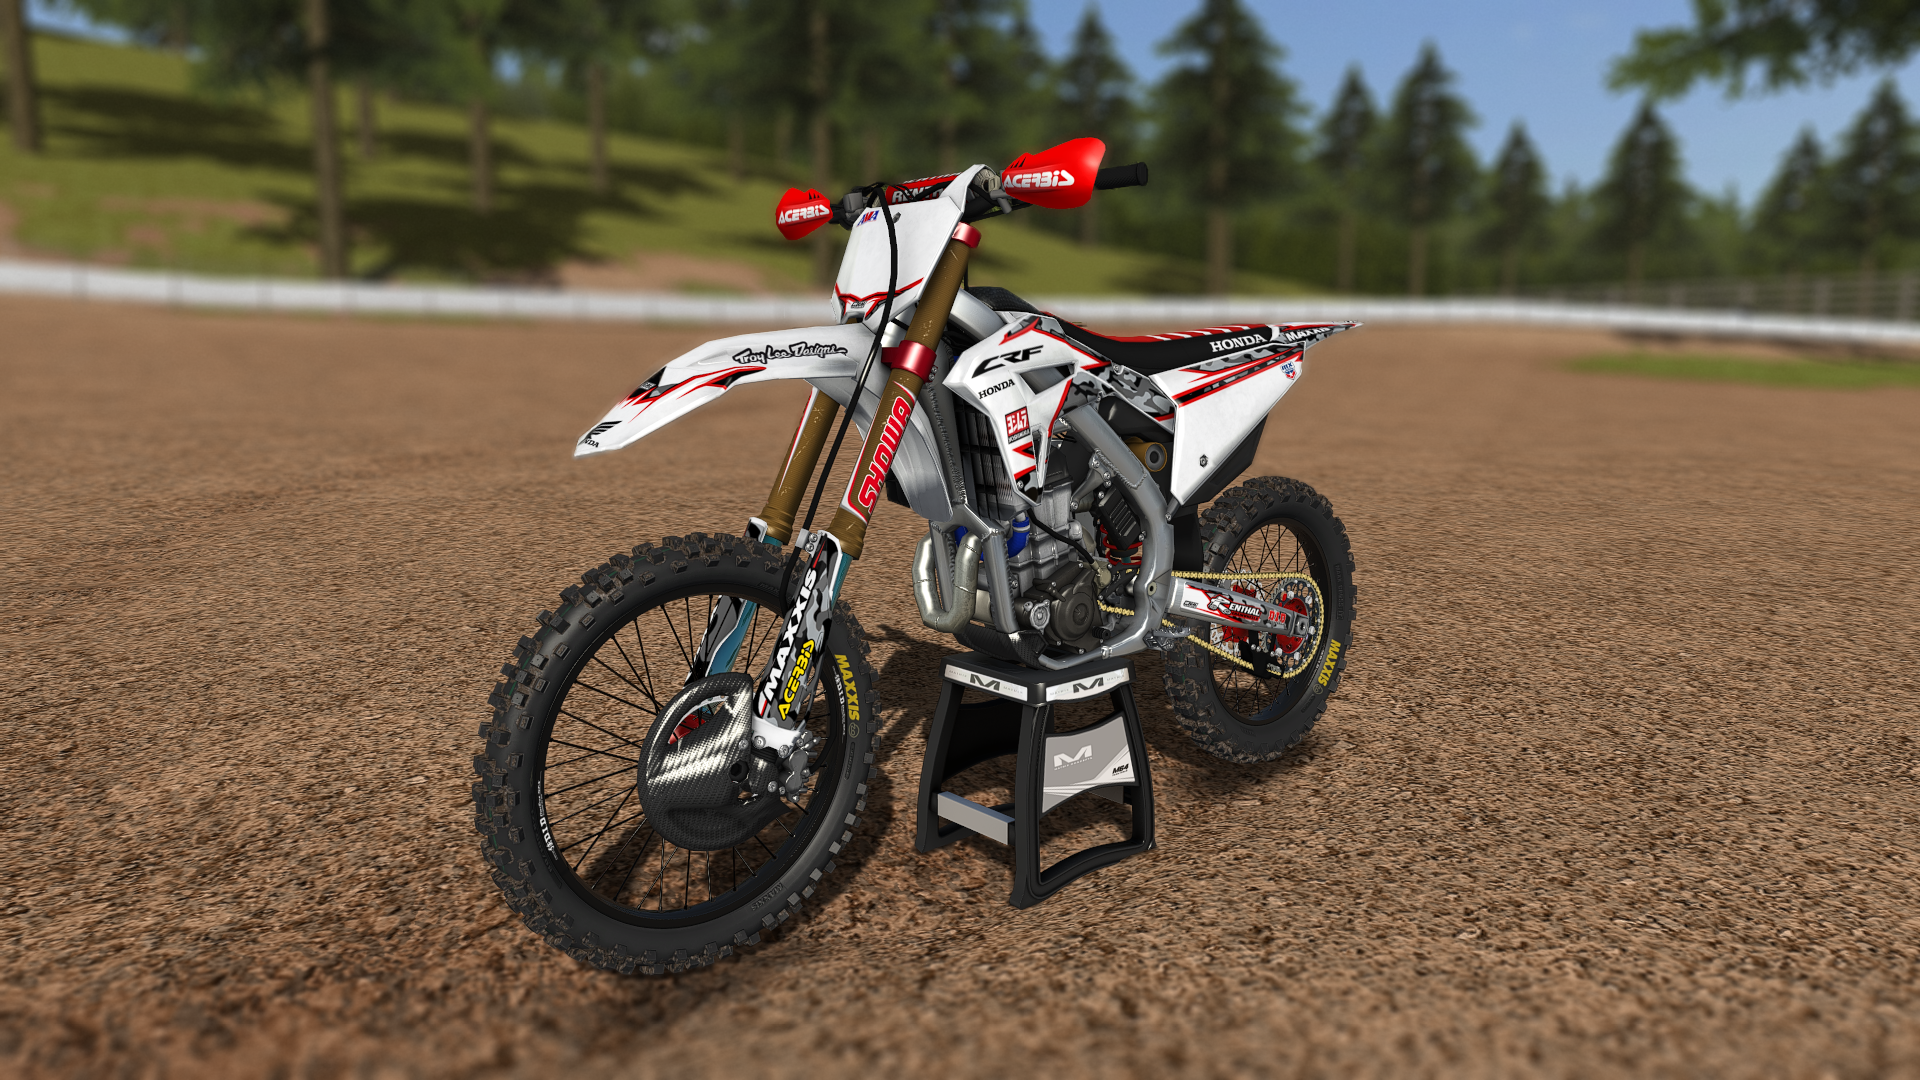 CRF 450 RW DeCal Works Camo Series